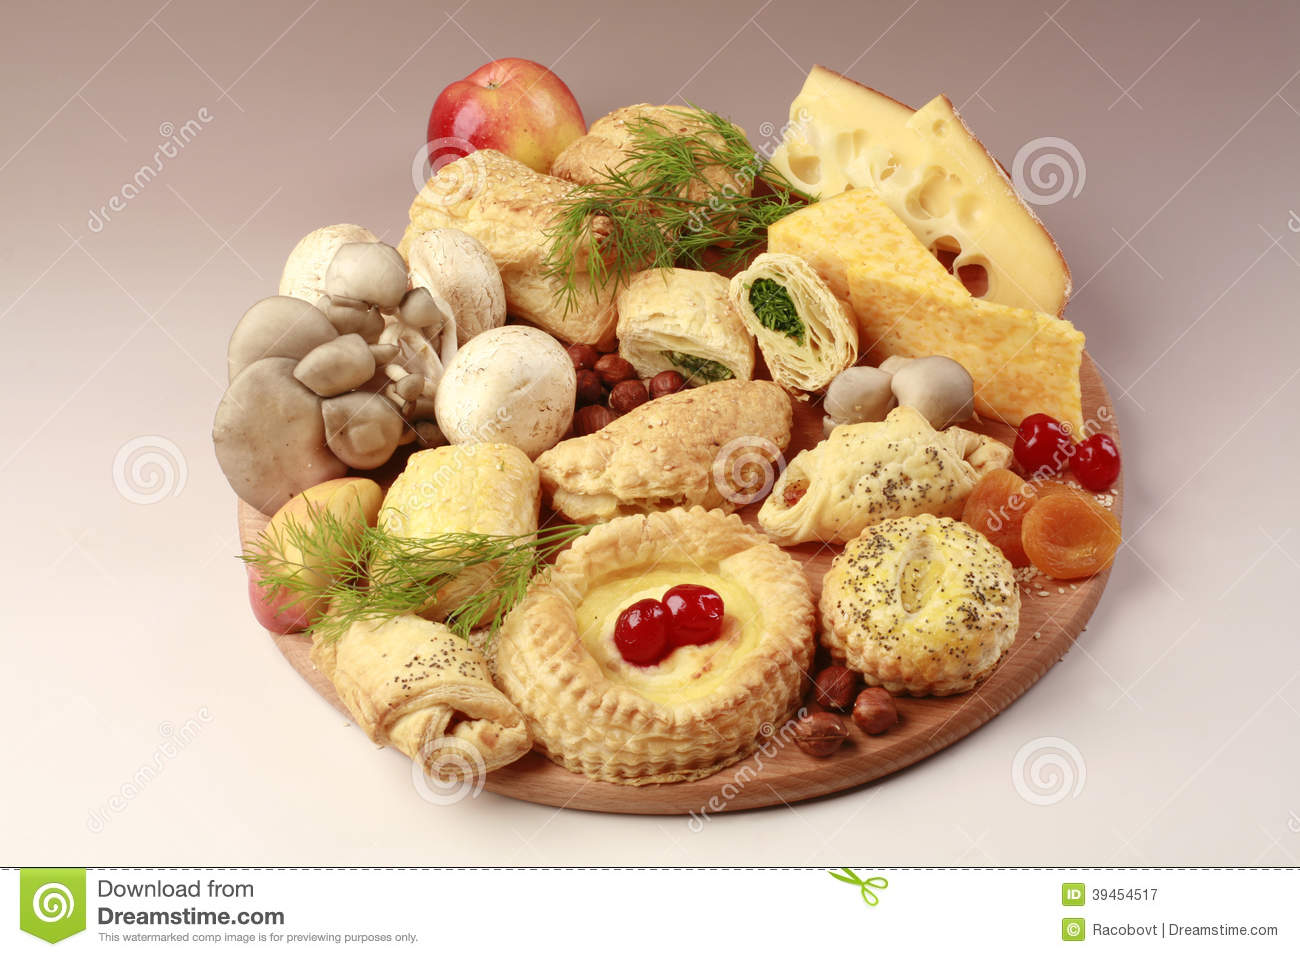 Healthy food, fruits and pastry